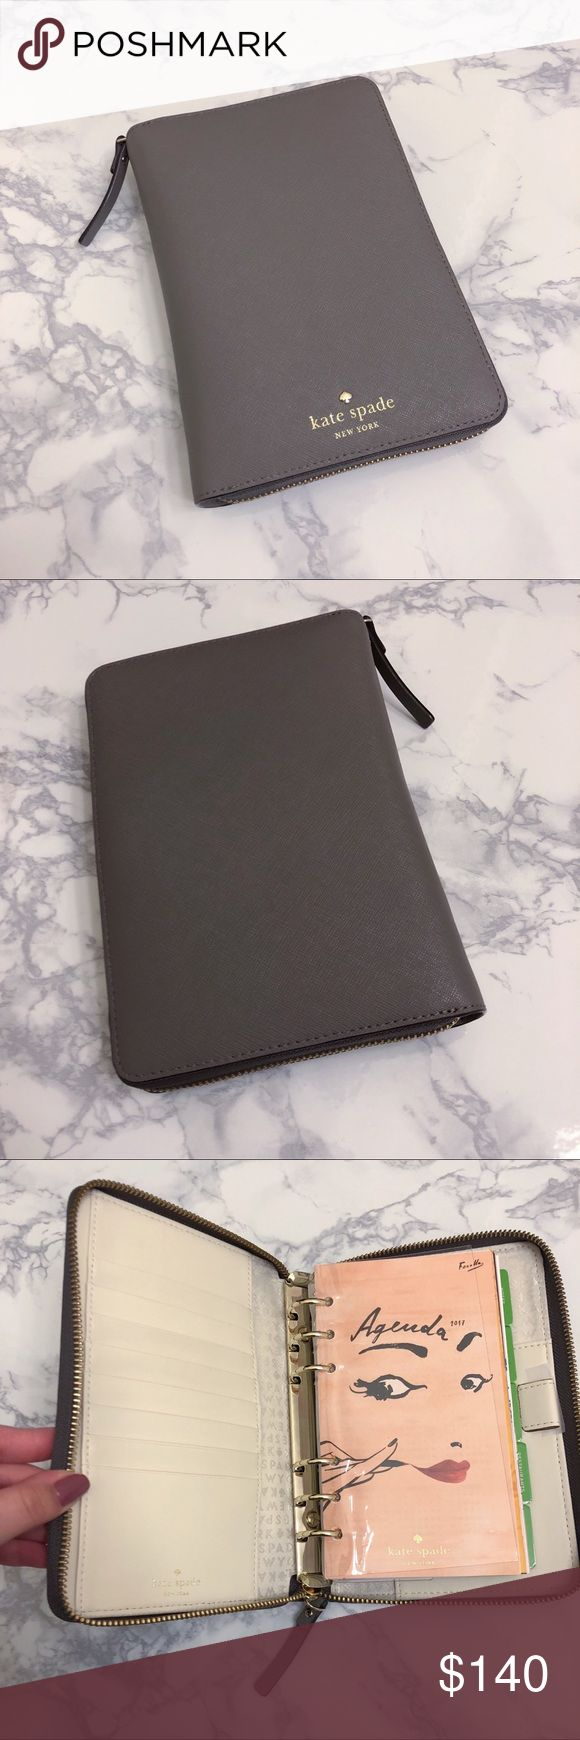 Kate Spade Zip Around Personal Planner Zip Around Personal Organizer in Cliff Grey. Purchased directly from Kate Spade online. New without tags. Inserts are from 2017 but I will leave them as some pages can still be used anytime. kate spade Accessories